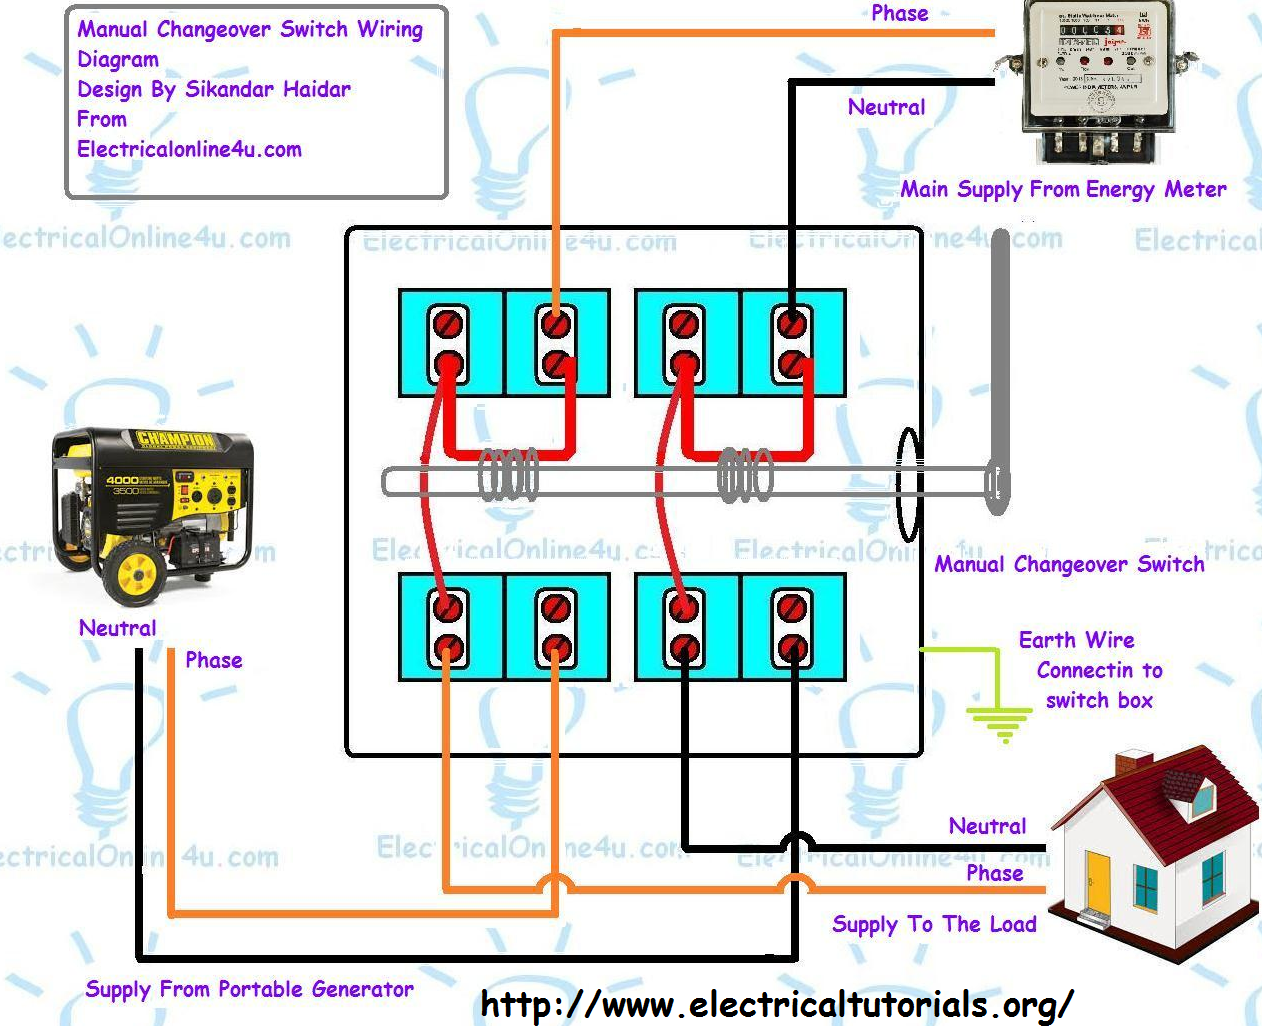 portable generator changeover switch wiring diagram electrical tutorials urdu